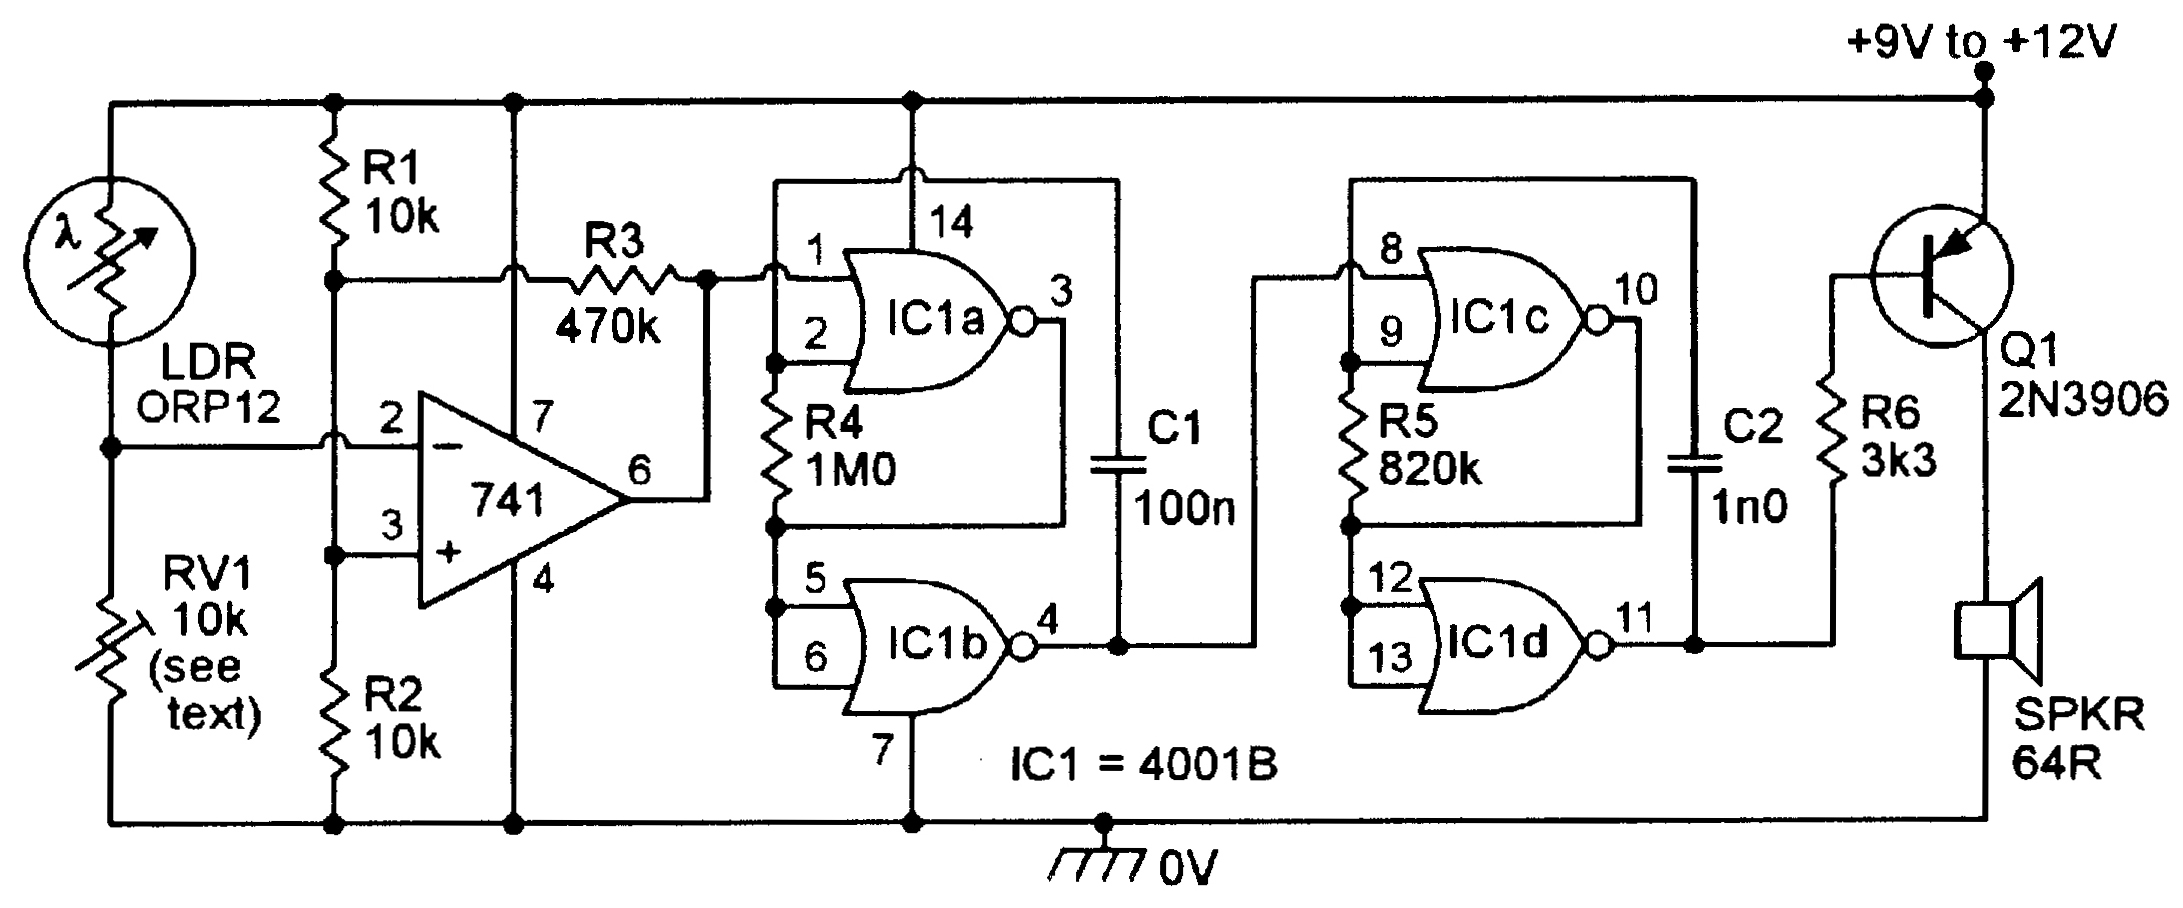 Light Sensitive Circuits Nuts Volts Magazine Circuit Simply Connects The Comparator Inverting Input To Voltage